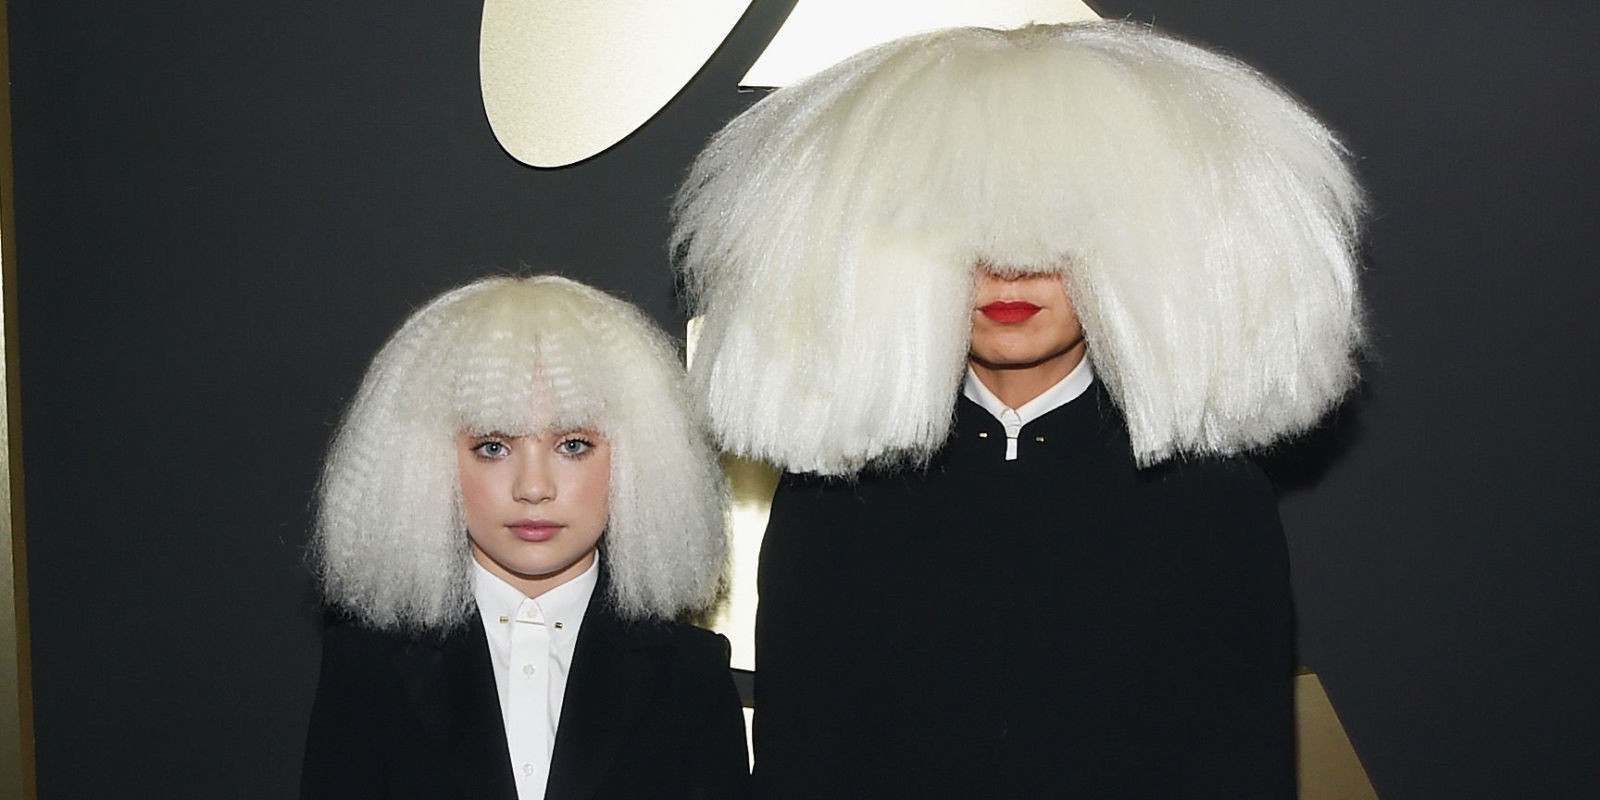 Maddie Ziegler And Sia In Matching Wigs At The Grammys